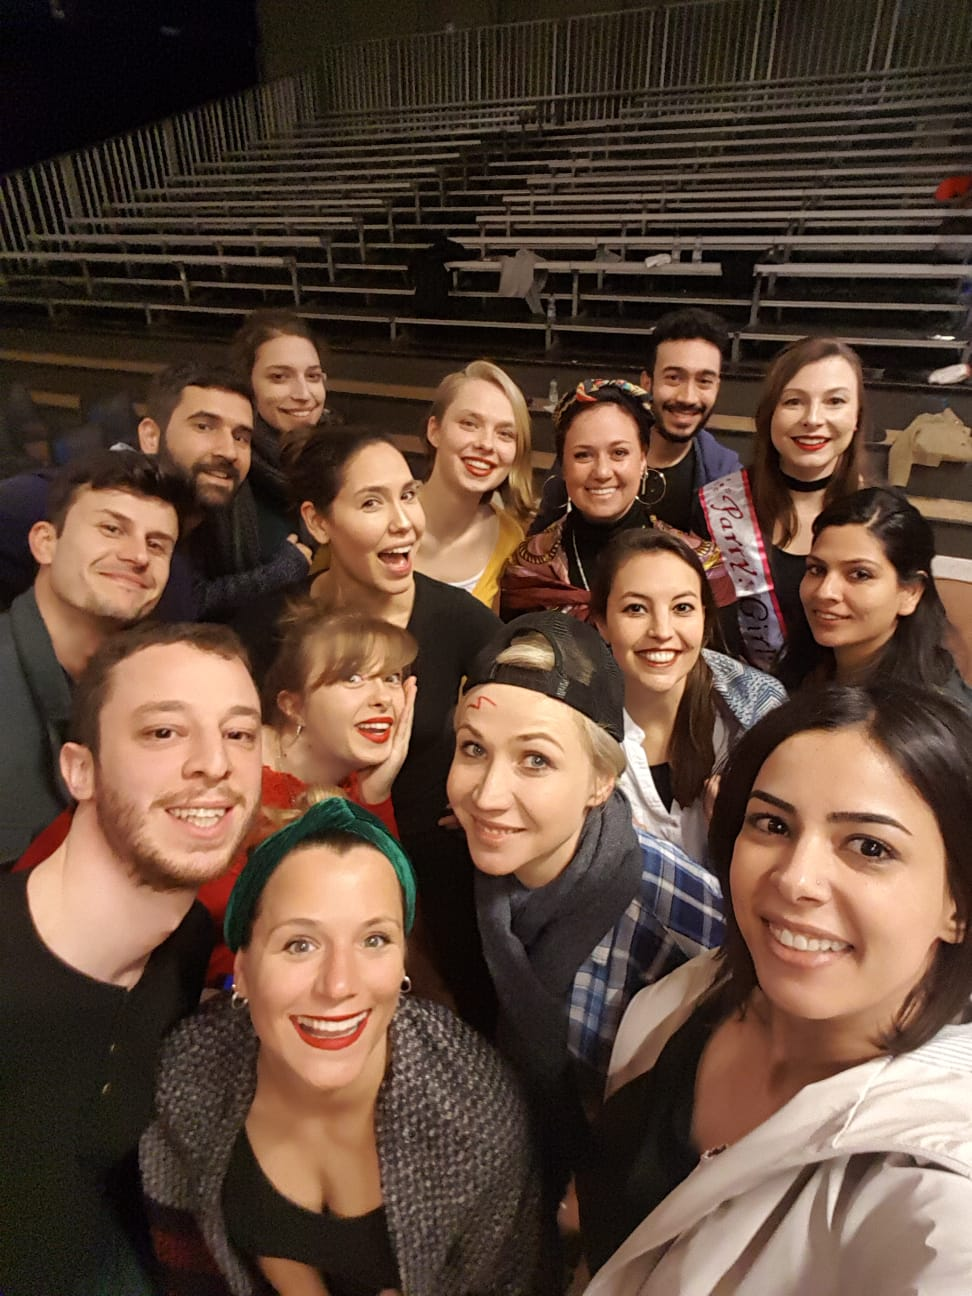 """Photo from the show """"Skin of our Teeth"""". Fifteen people take a group selfie in front of the stands"""